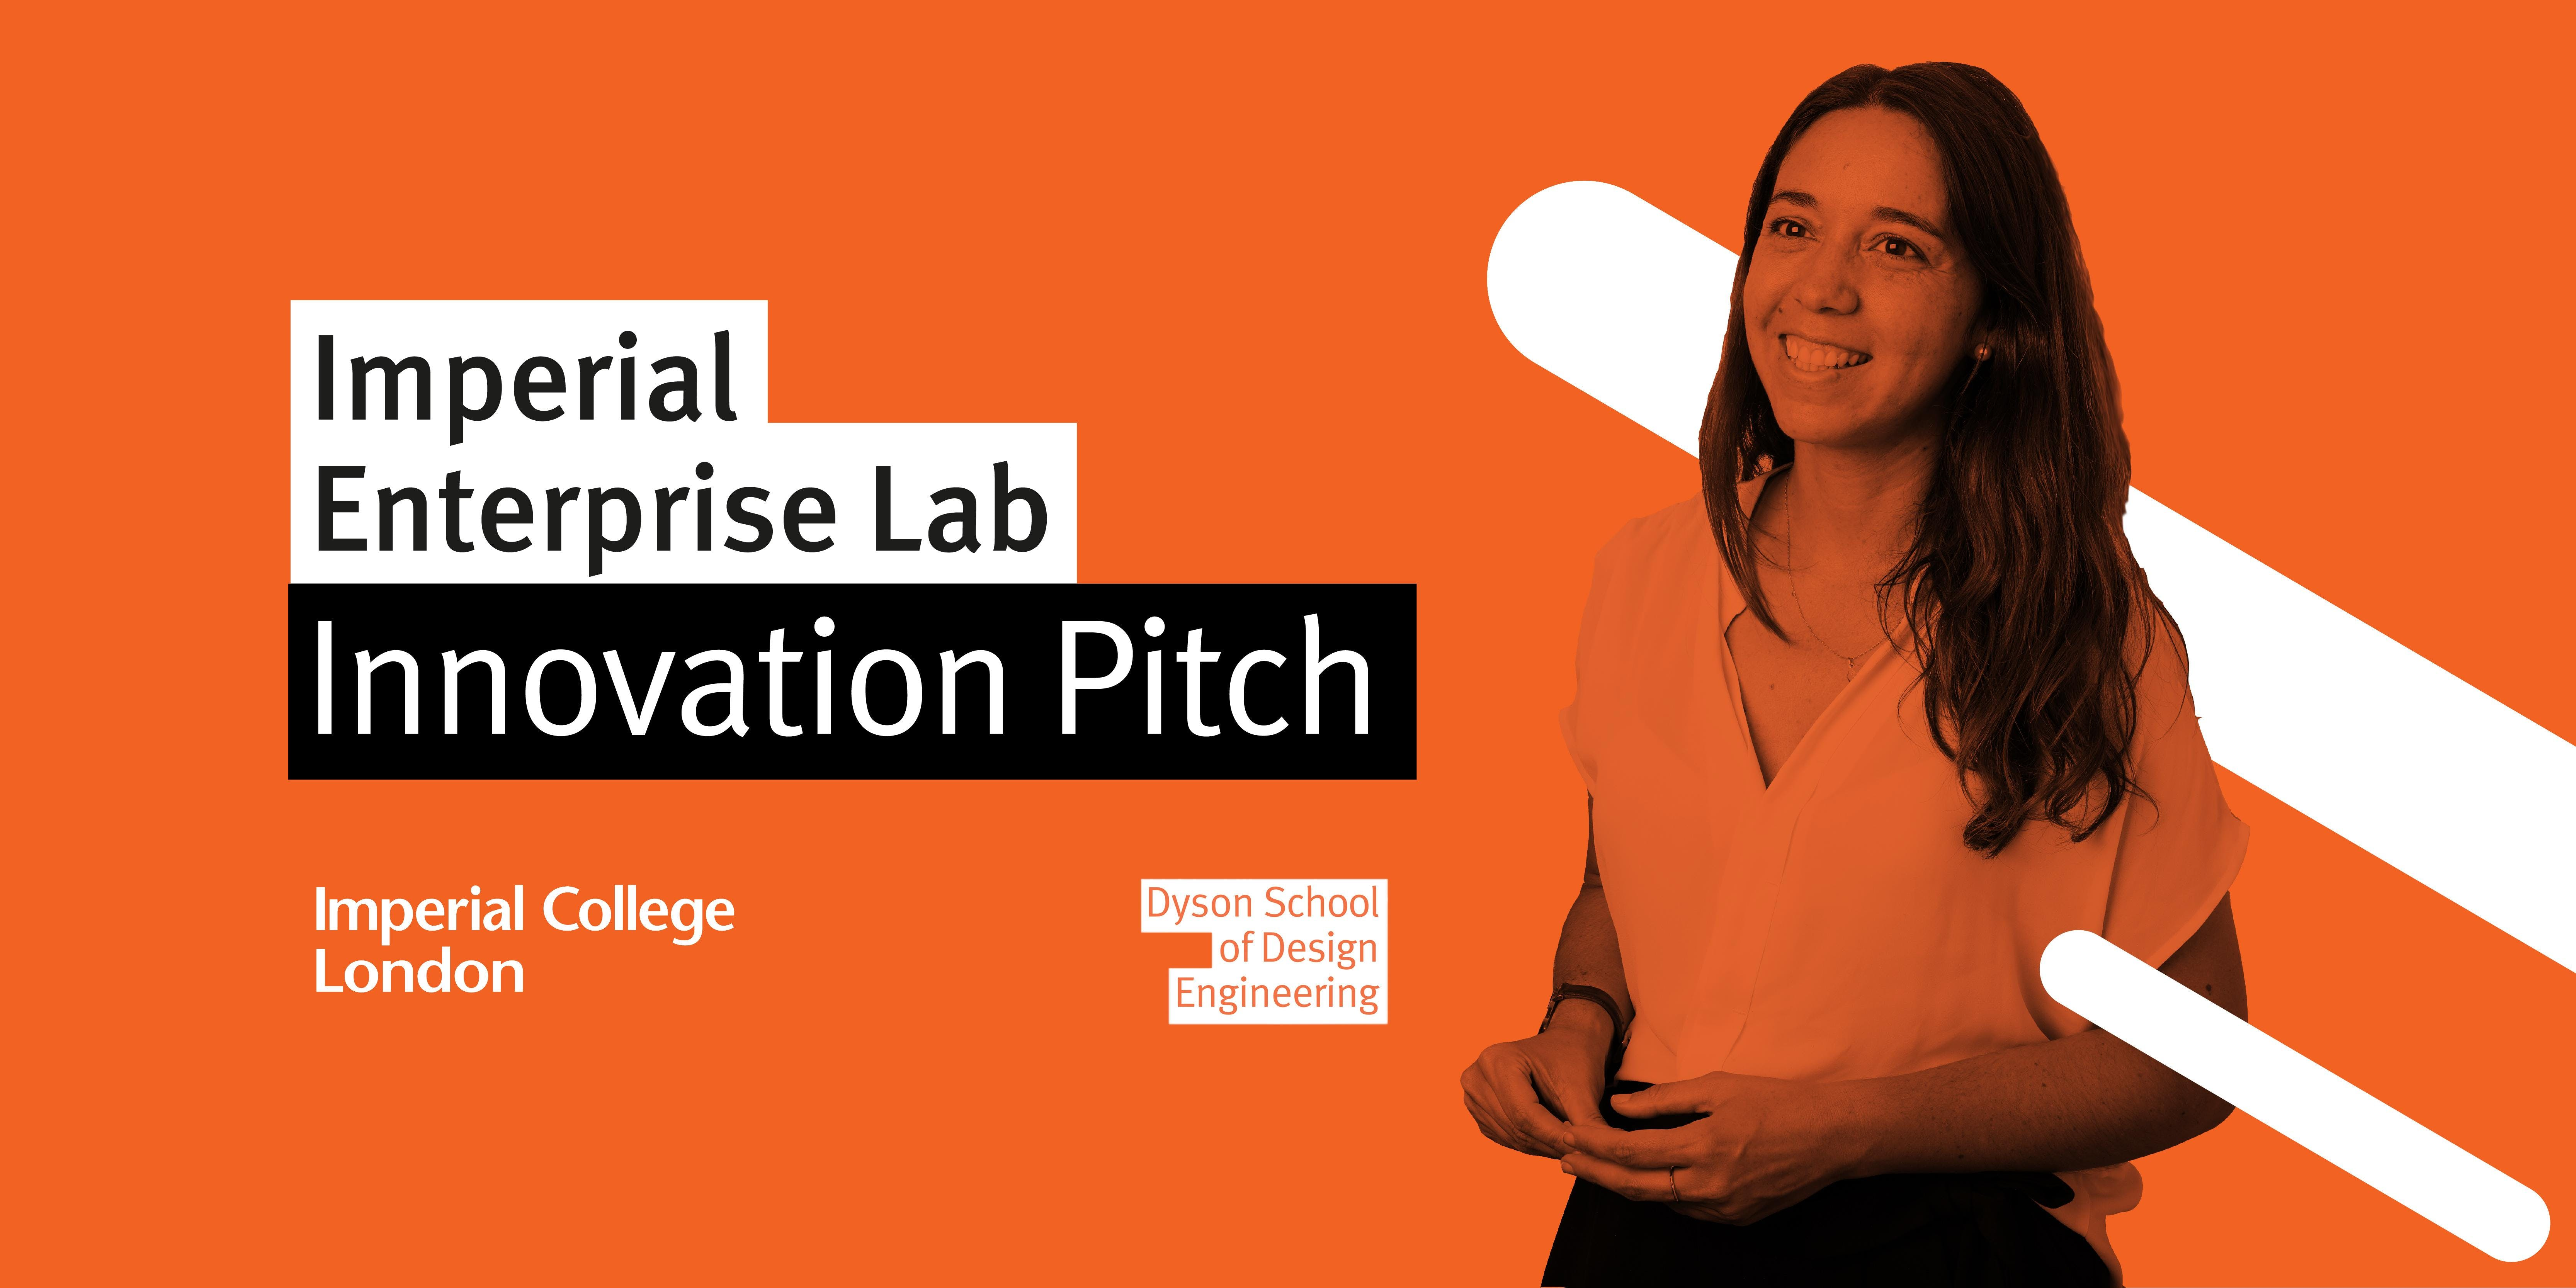 Innovation Pitch December At Dyson School Of Design Engineering Imperial College London London